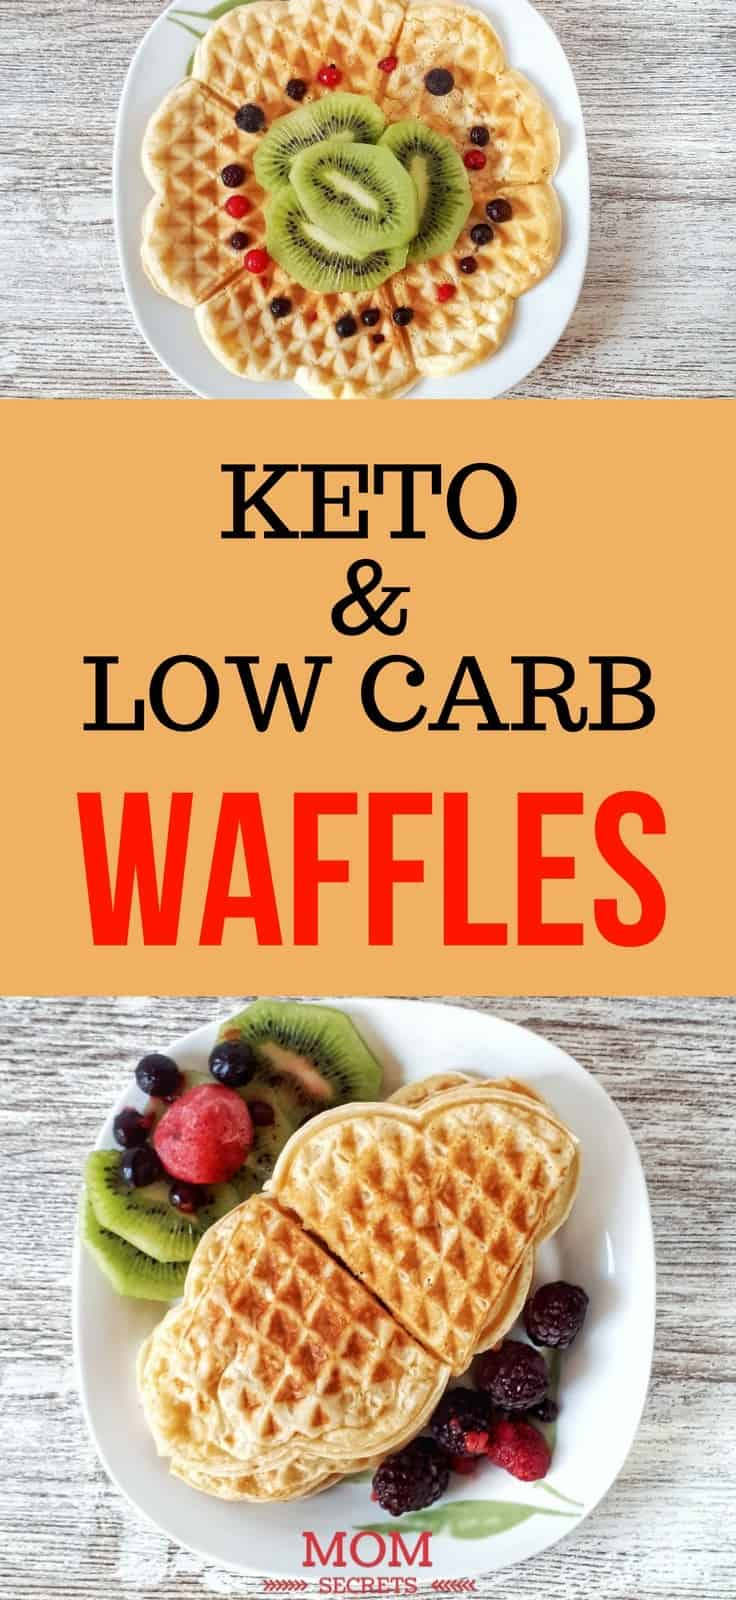 Keto Waffles - Easy Keto Breakfast to start burning fat. Keto Breakfast on the go, Keto breakfast make ahead recipes. Eggs cooked in creative ways are the basis of your breakfast on a Ketogenic diet. But it's not eggs only! You can have a no eggs Keto breakfast with muffins, Keto breakfast pancakes or Keto breakfast smoothie. #keto #ketogenic #ketodiet #breakfast #ketorecipes